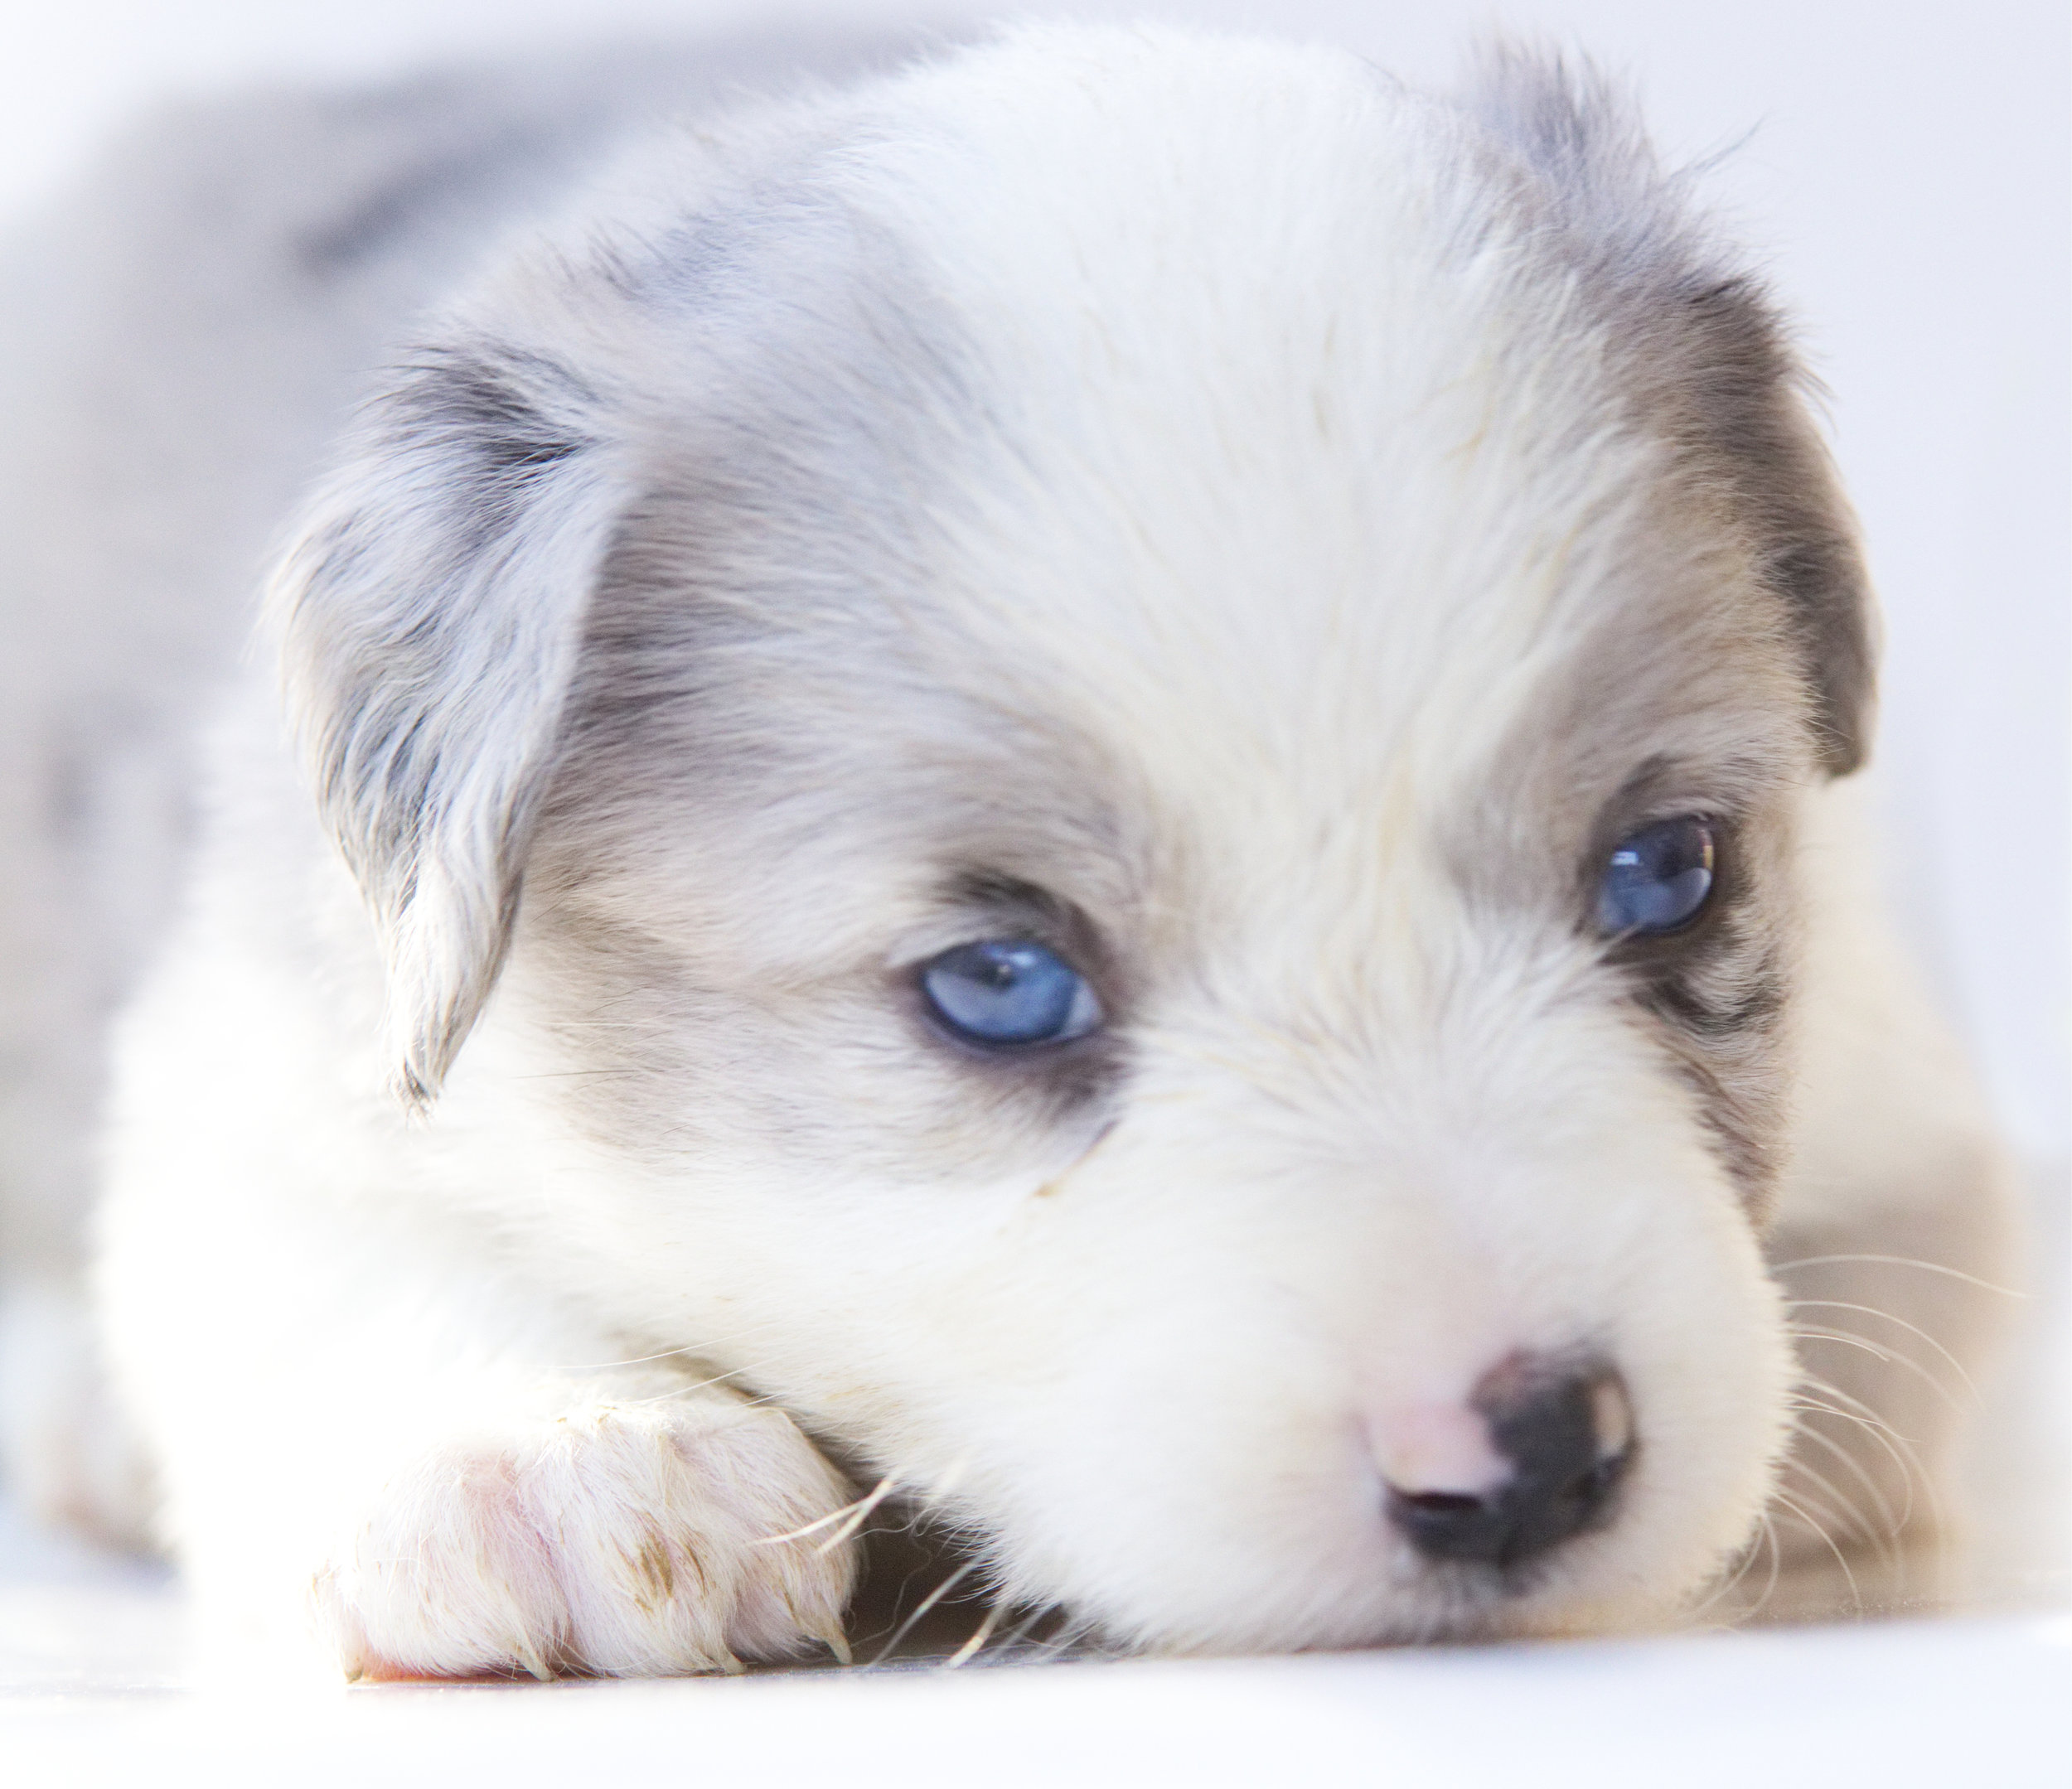 Destiny Blue merle Female One blue eye one partial blue eye. (May change) NO COPPER ASDR Registered Ready May 22nd